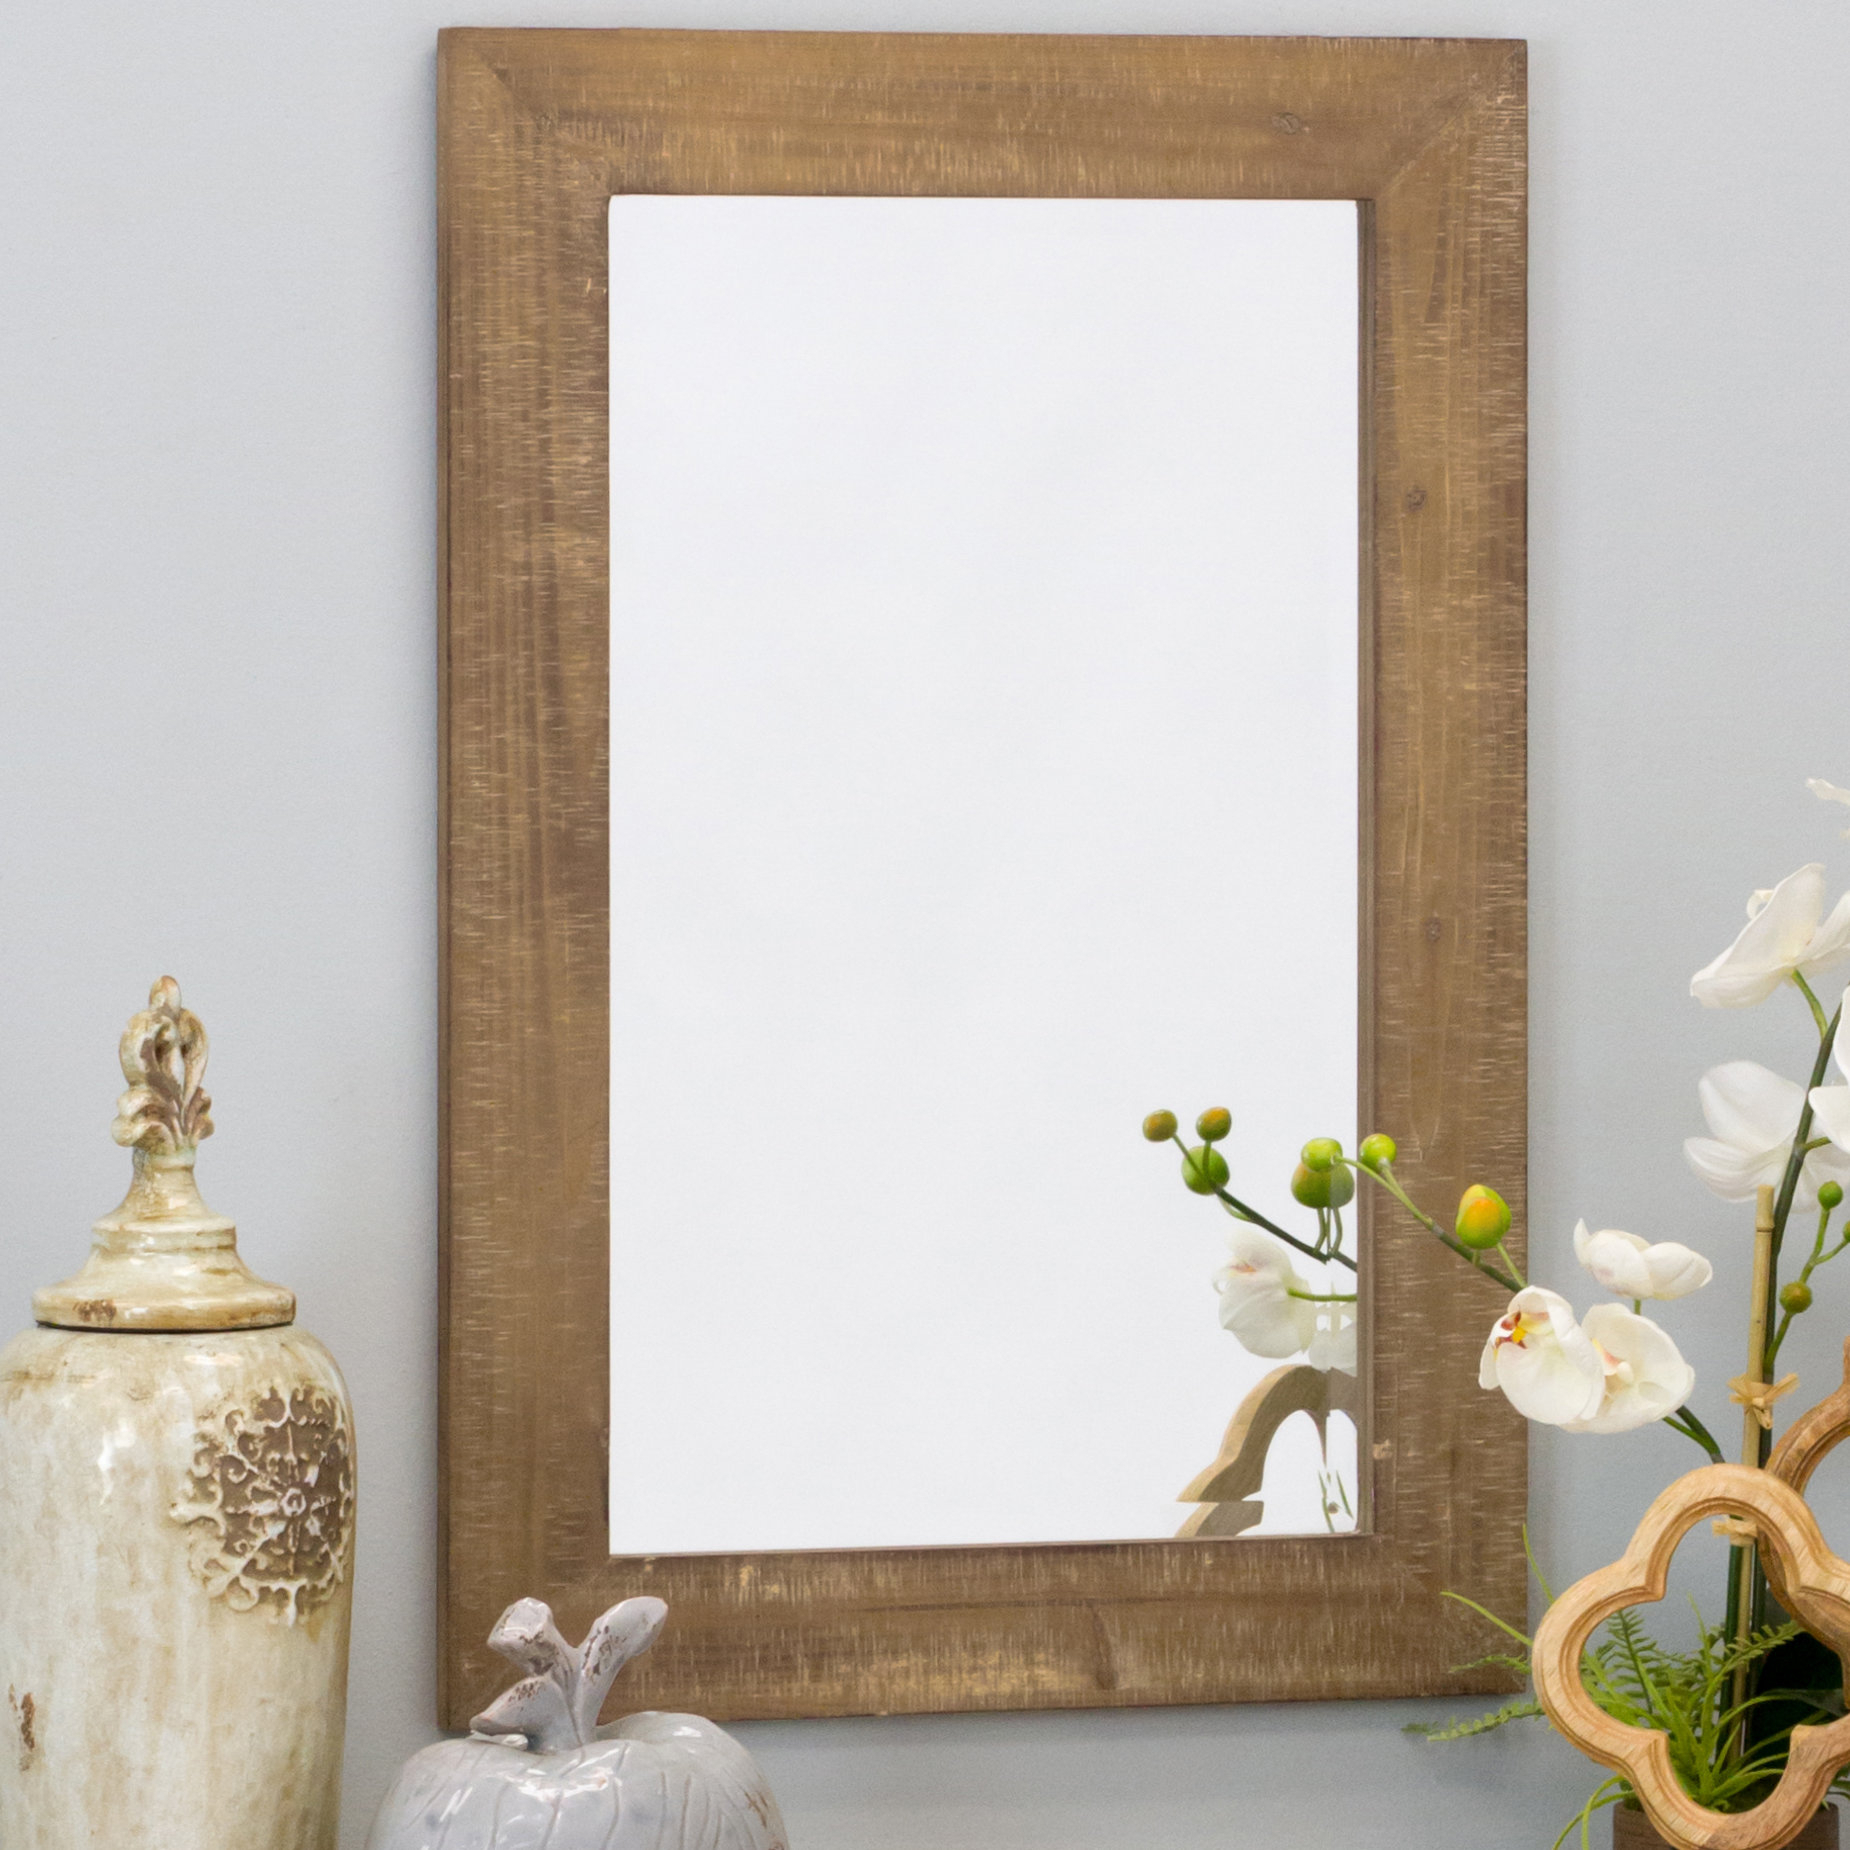 Longwood Rustic Beveled Accent Mirror Regarding Rena Accent Mirrors (View 8 of 30)